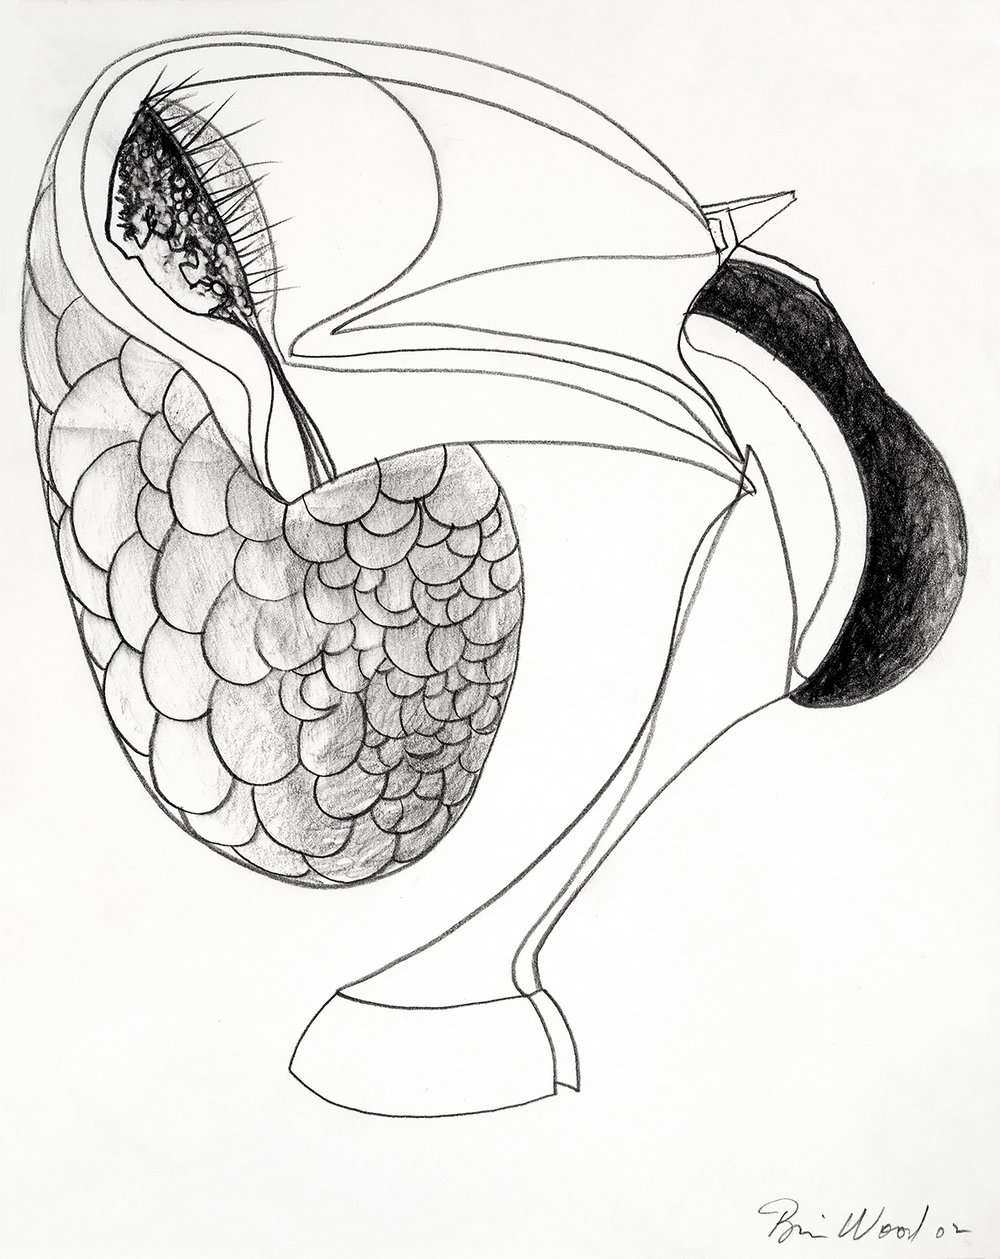 """Brian Wood  """"Untitled,"""" 2002  Graphite on paper  14 x 11 in."""